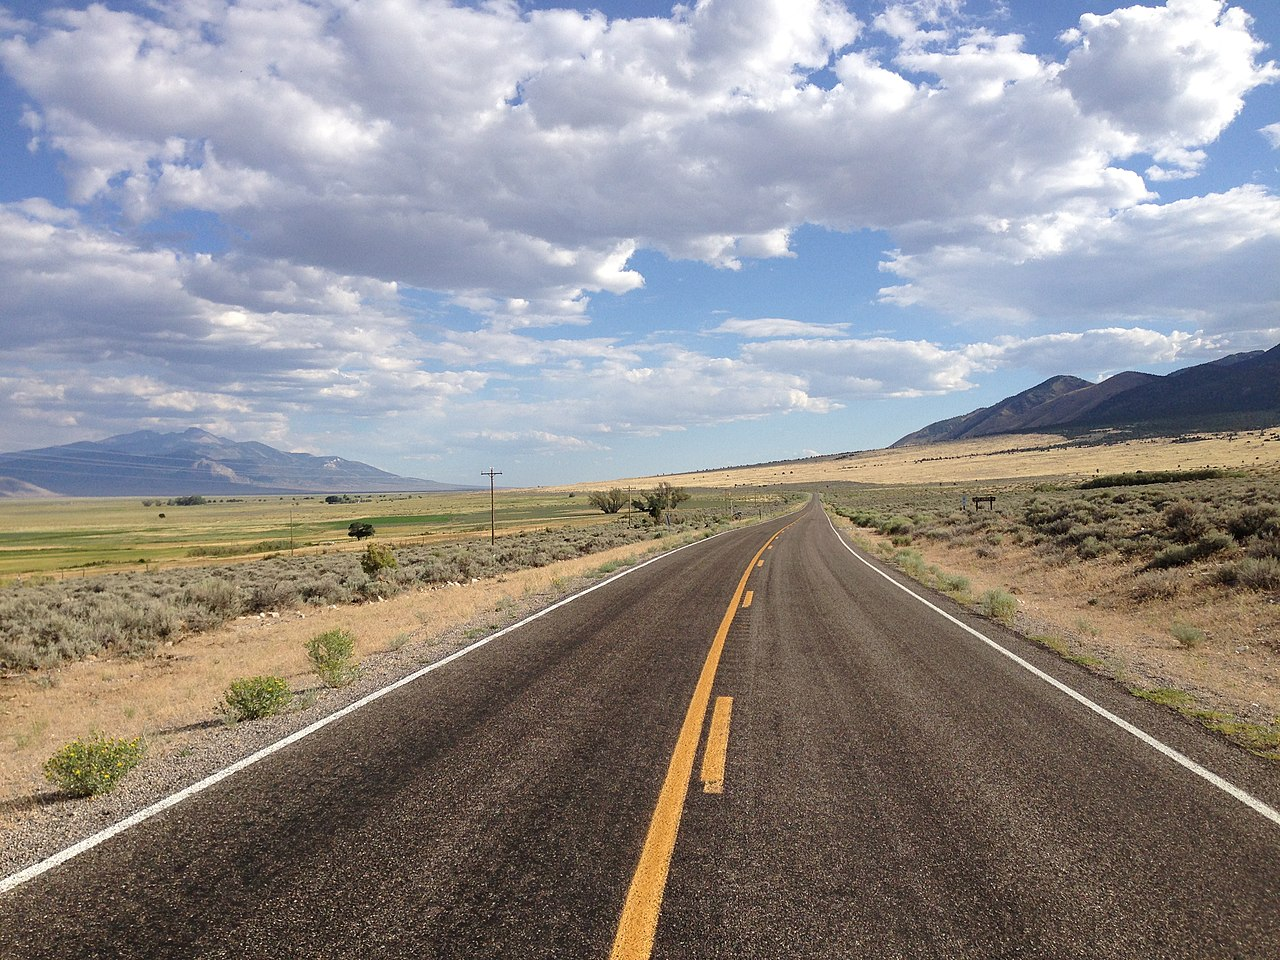 File:2014-08-09 17 10 18 View south along Nevada State ...